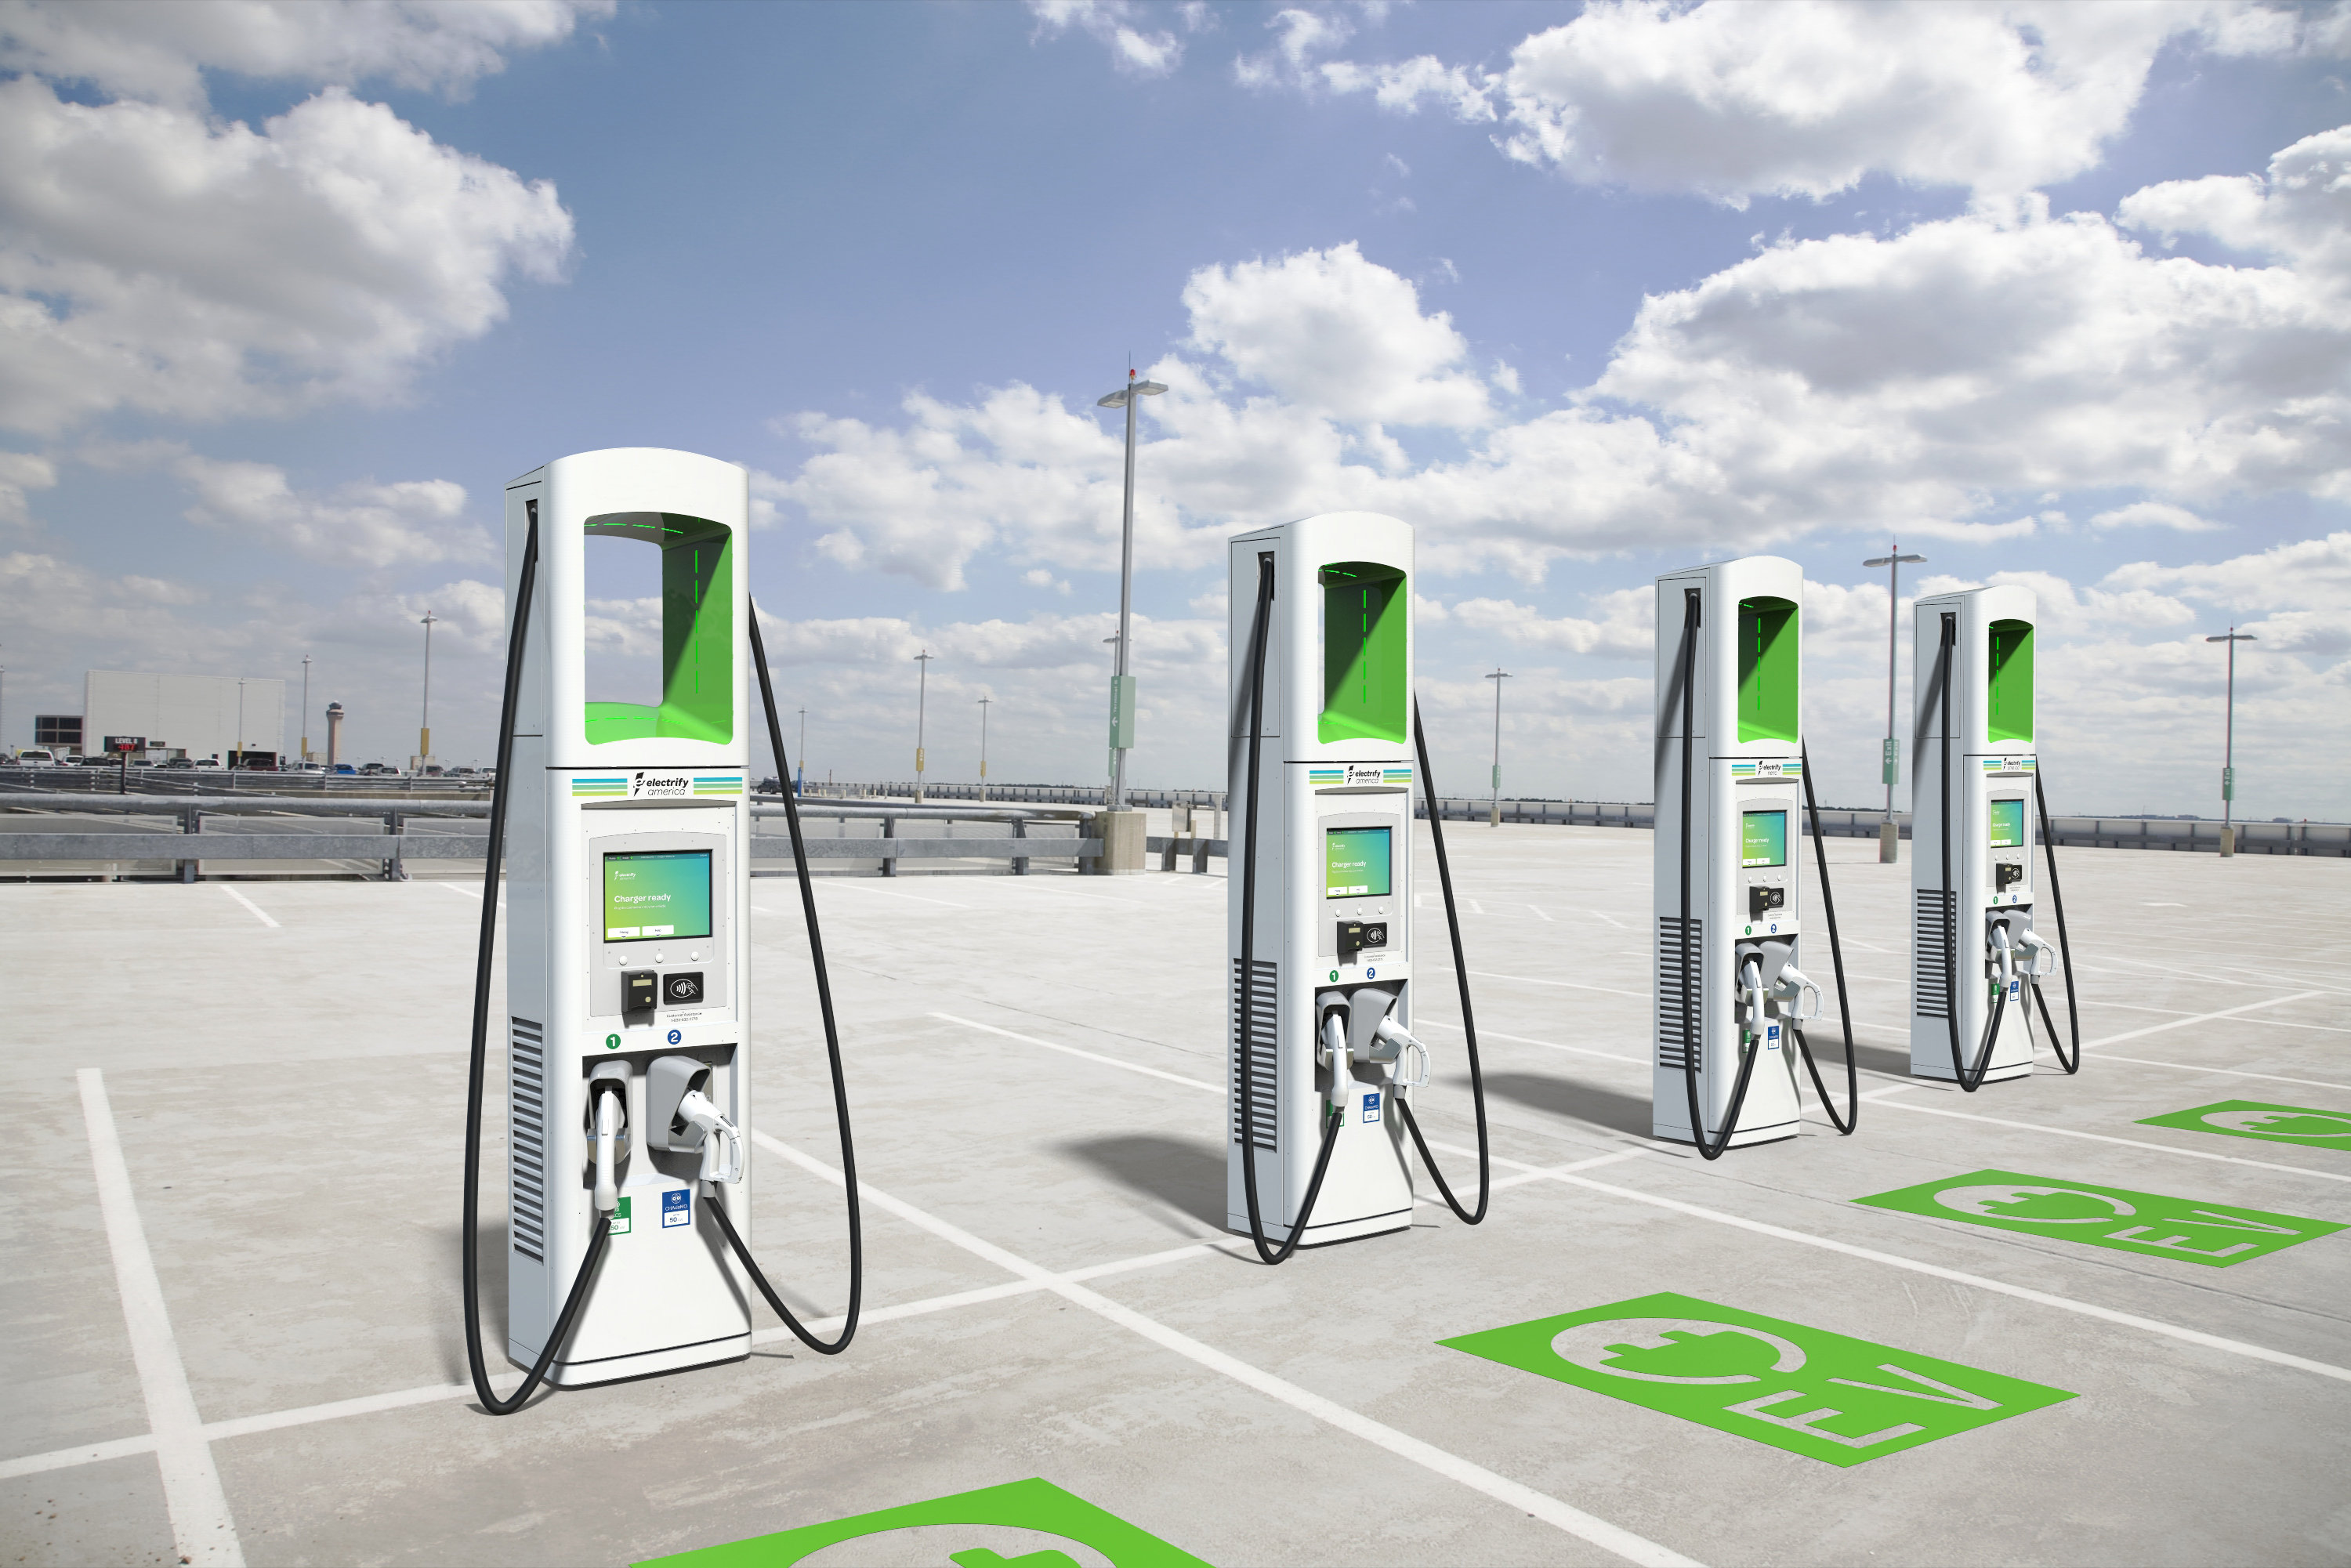 Btc Efacec And Signet Will Work With Electrify America On This New Network Of Fast Ev Chargers